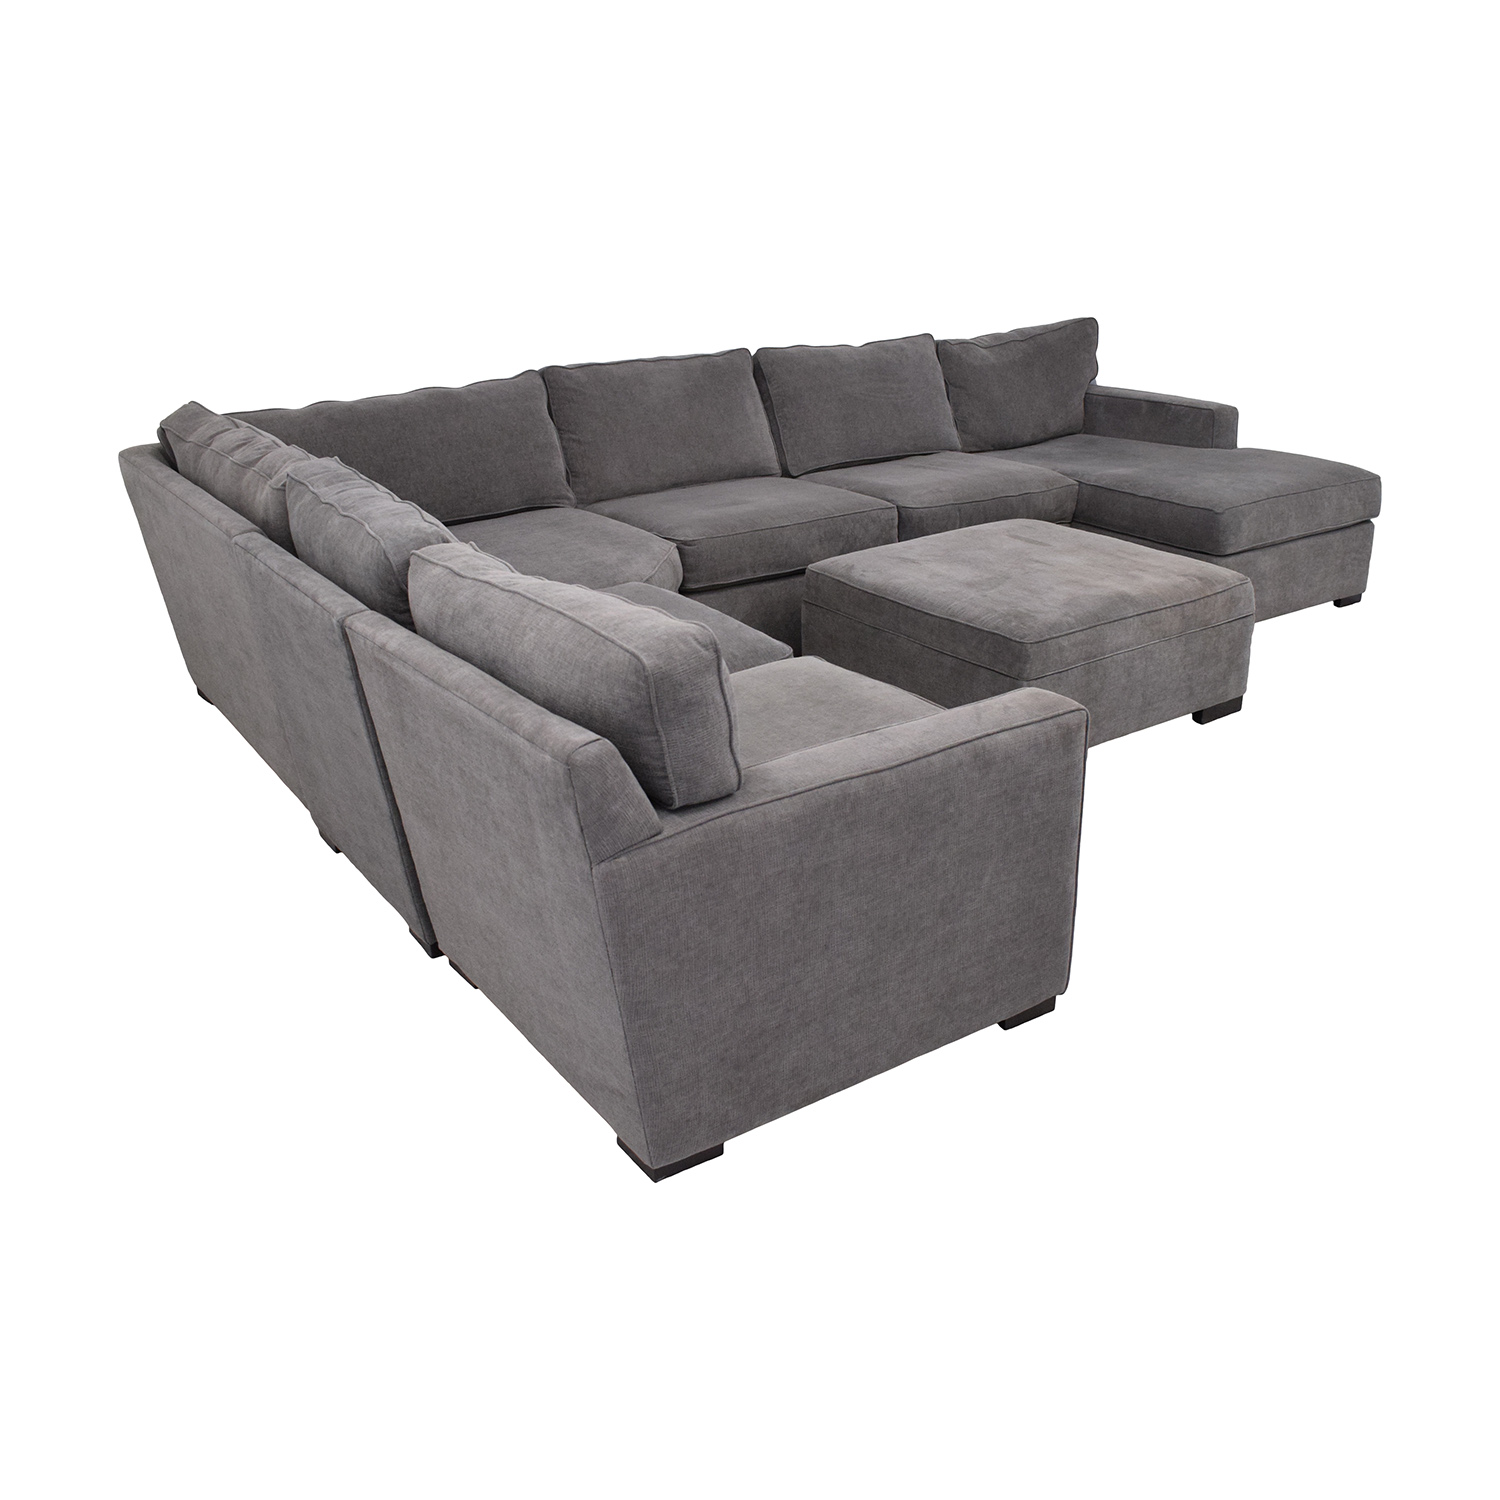 shop Macy's Radley Fabric 6-Piece Chaise Sectional Sofa with Corner Piece and Ottoman Macy's Sectionals